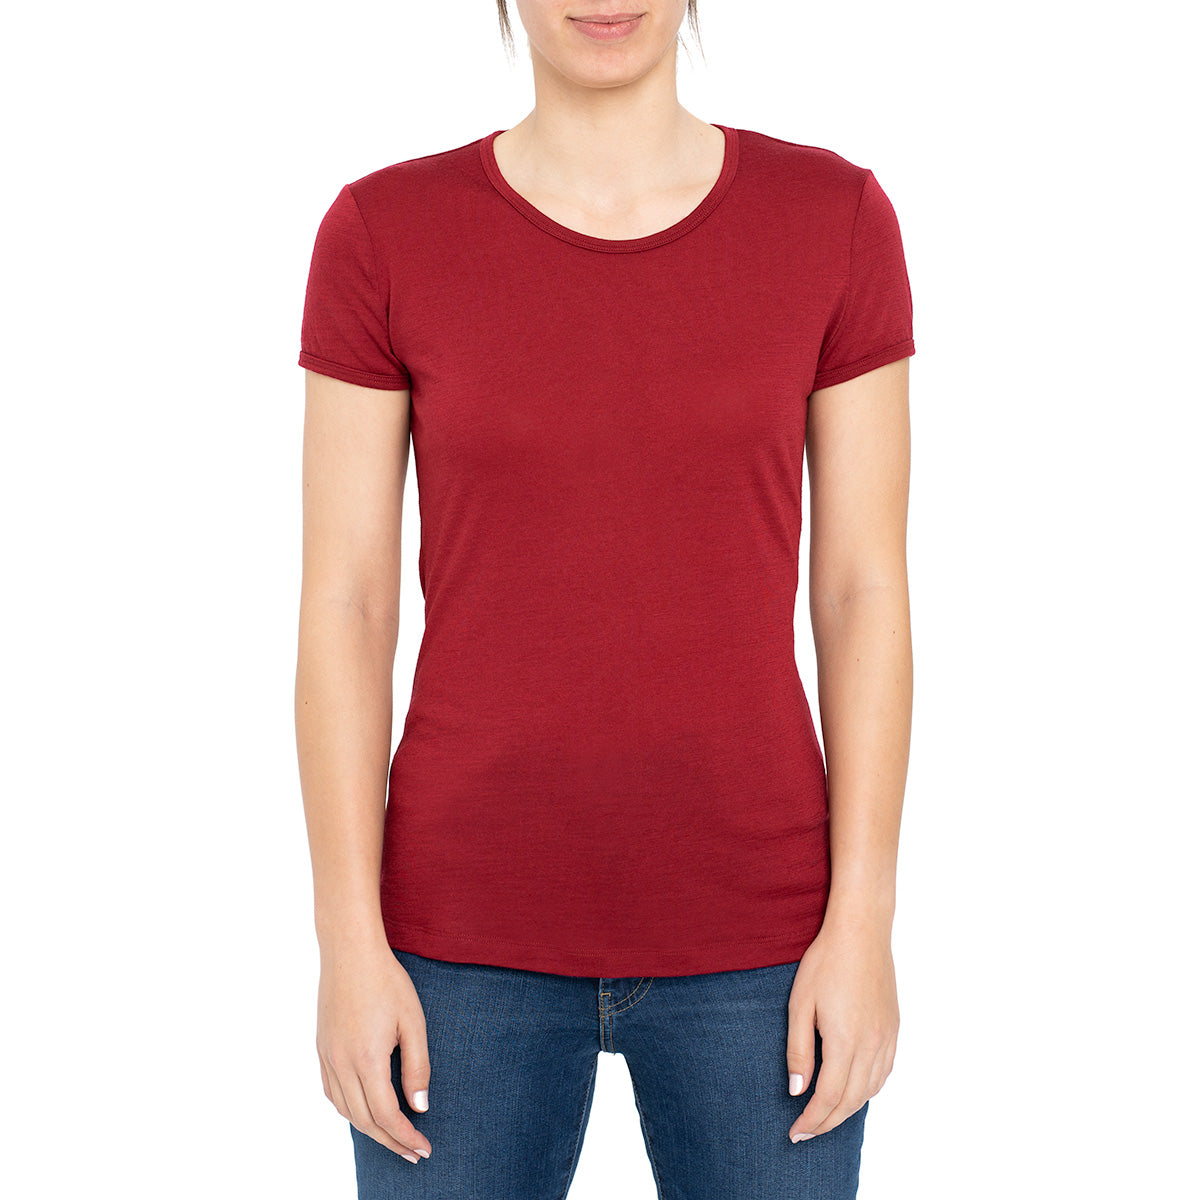 menique Women's Merino 160 Short Sleeve Crew Royal Cherry Color